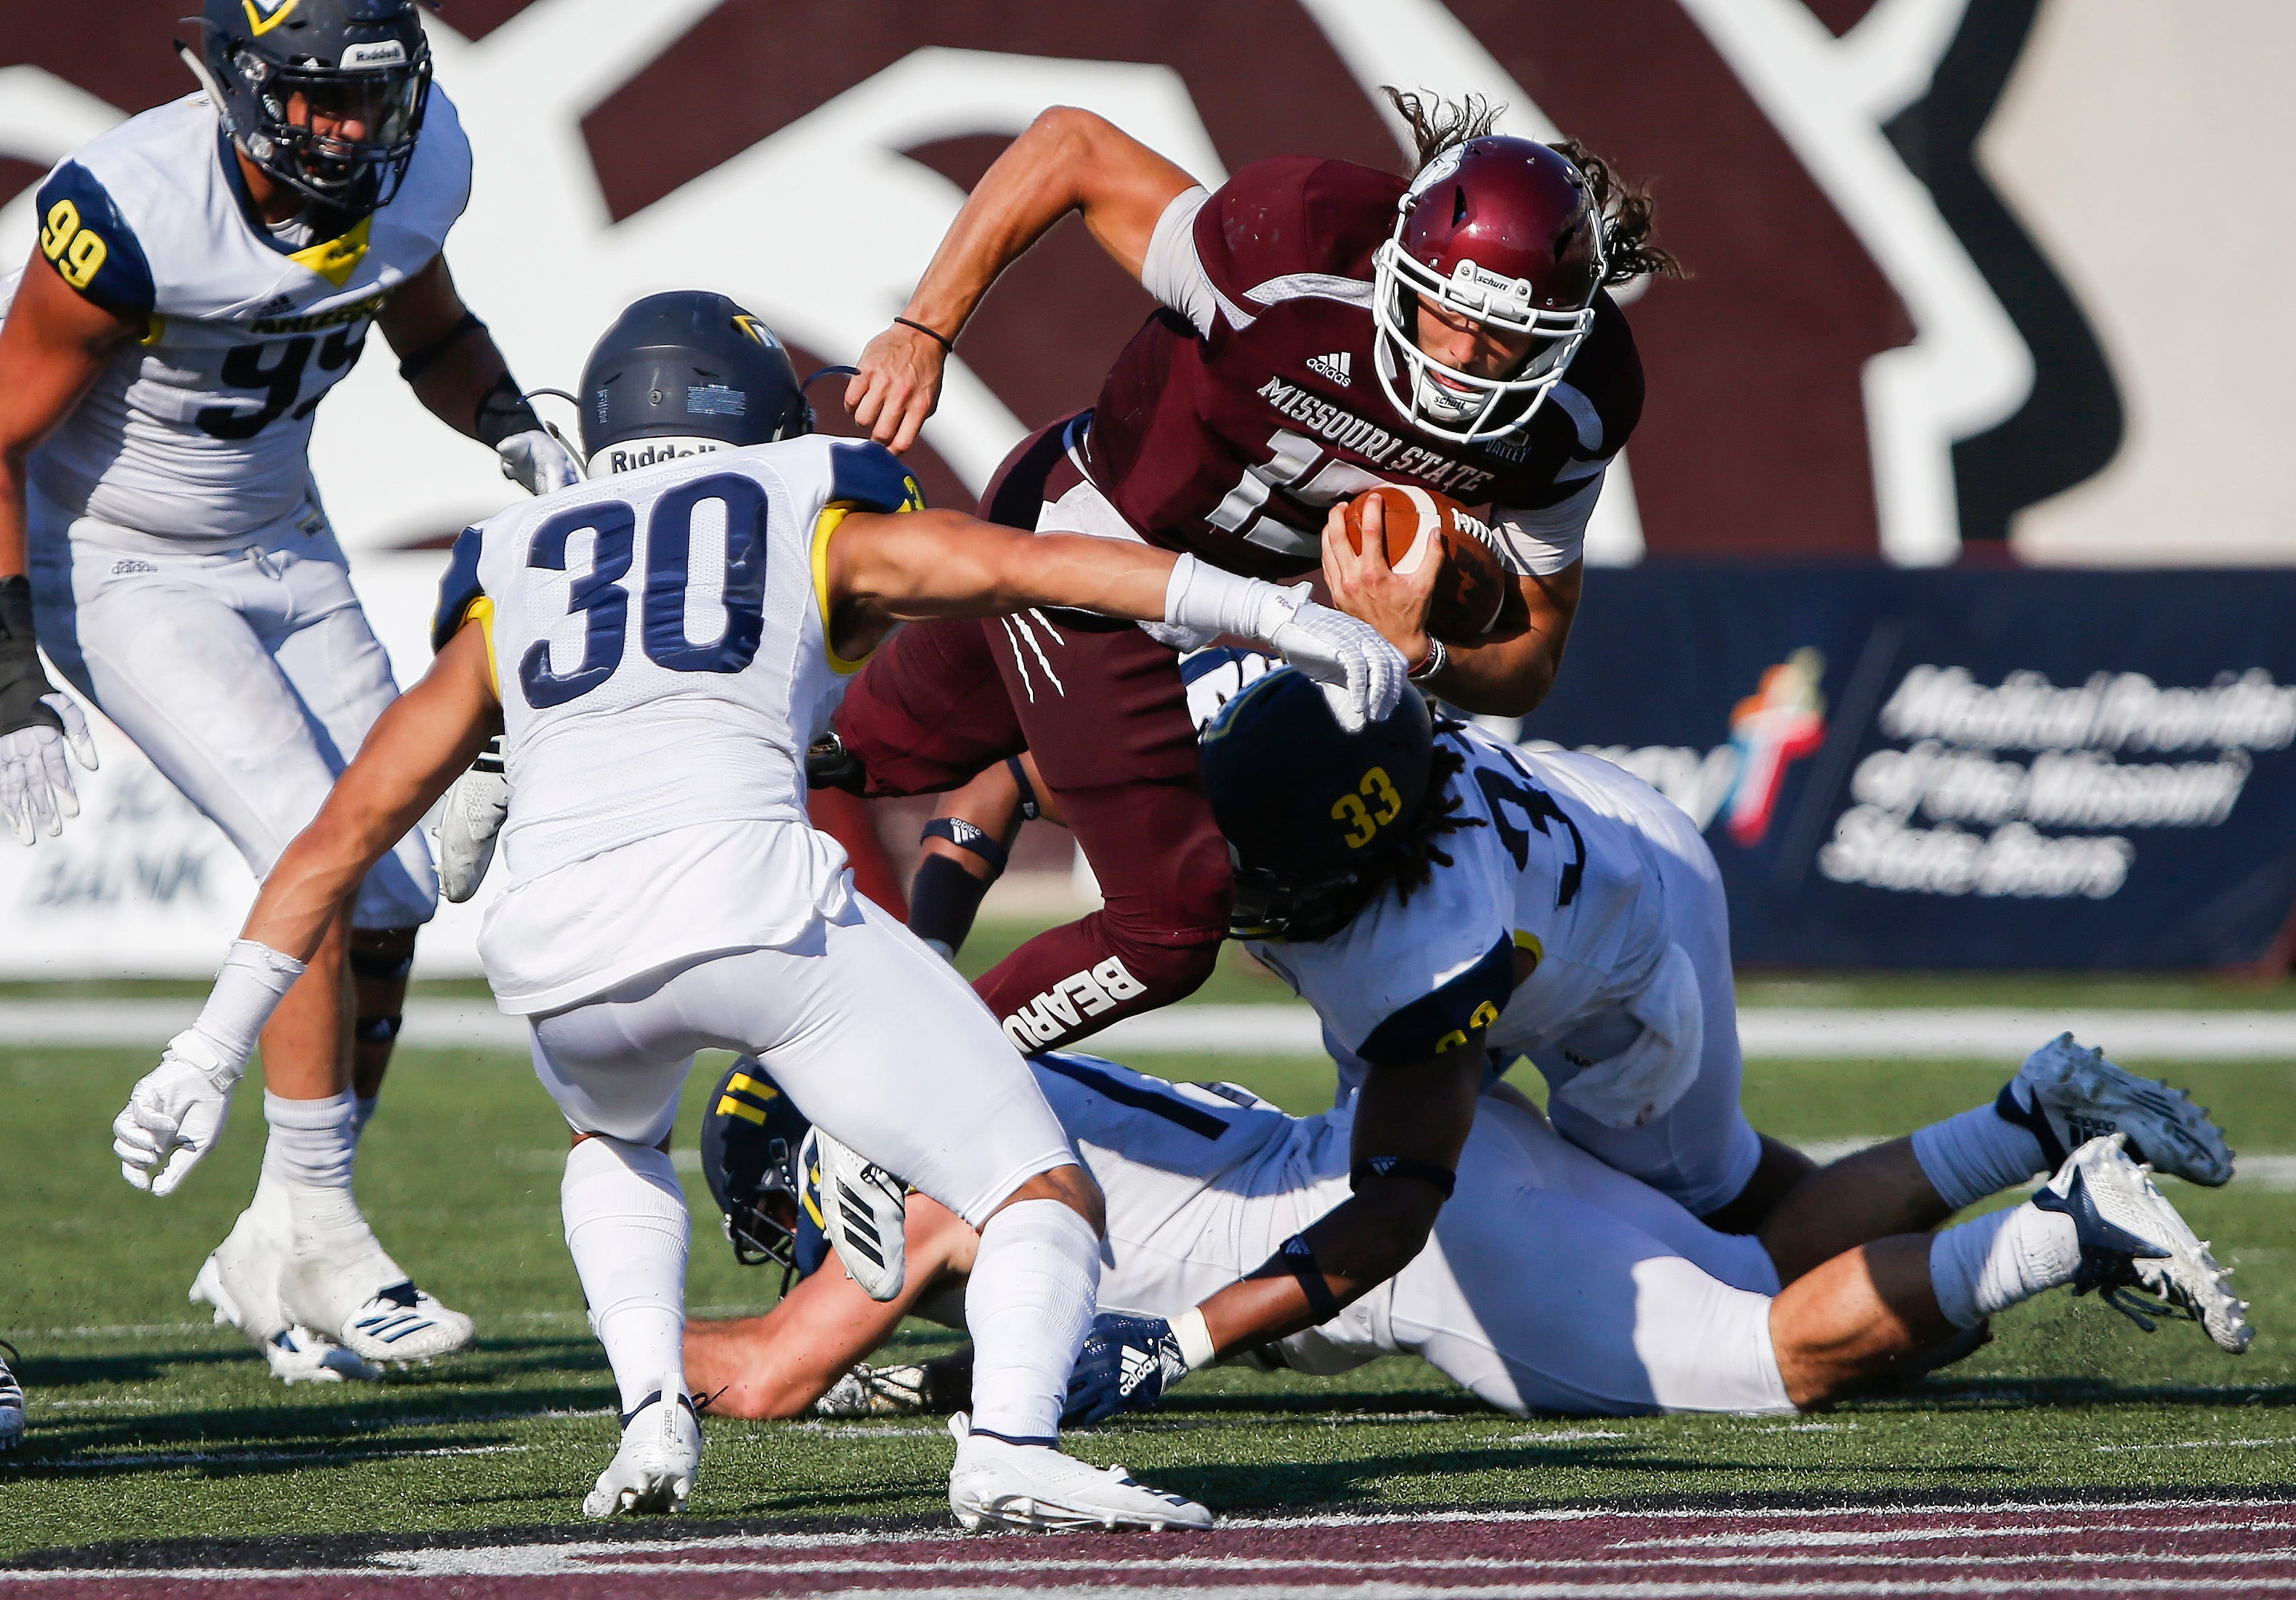 Peyton Huslig runs with the ball during Missouri State's game against Northern Arizona at Plaster Stadium on Saturday, Sept. 15, 2018.